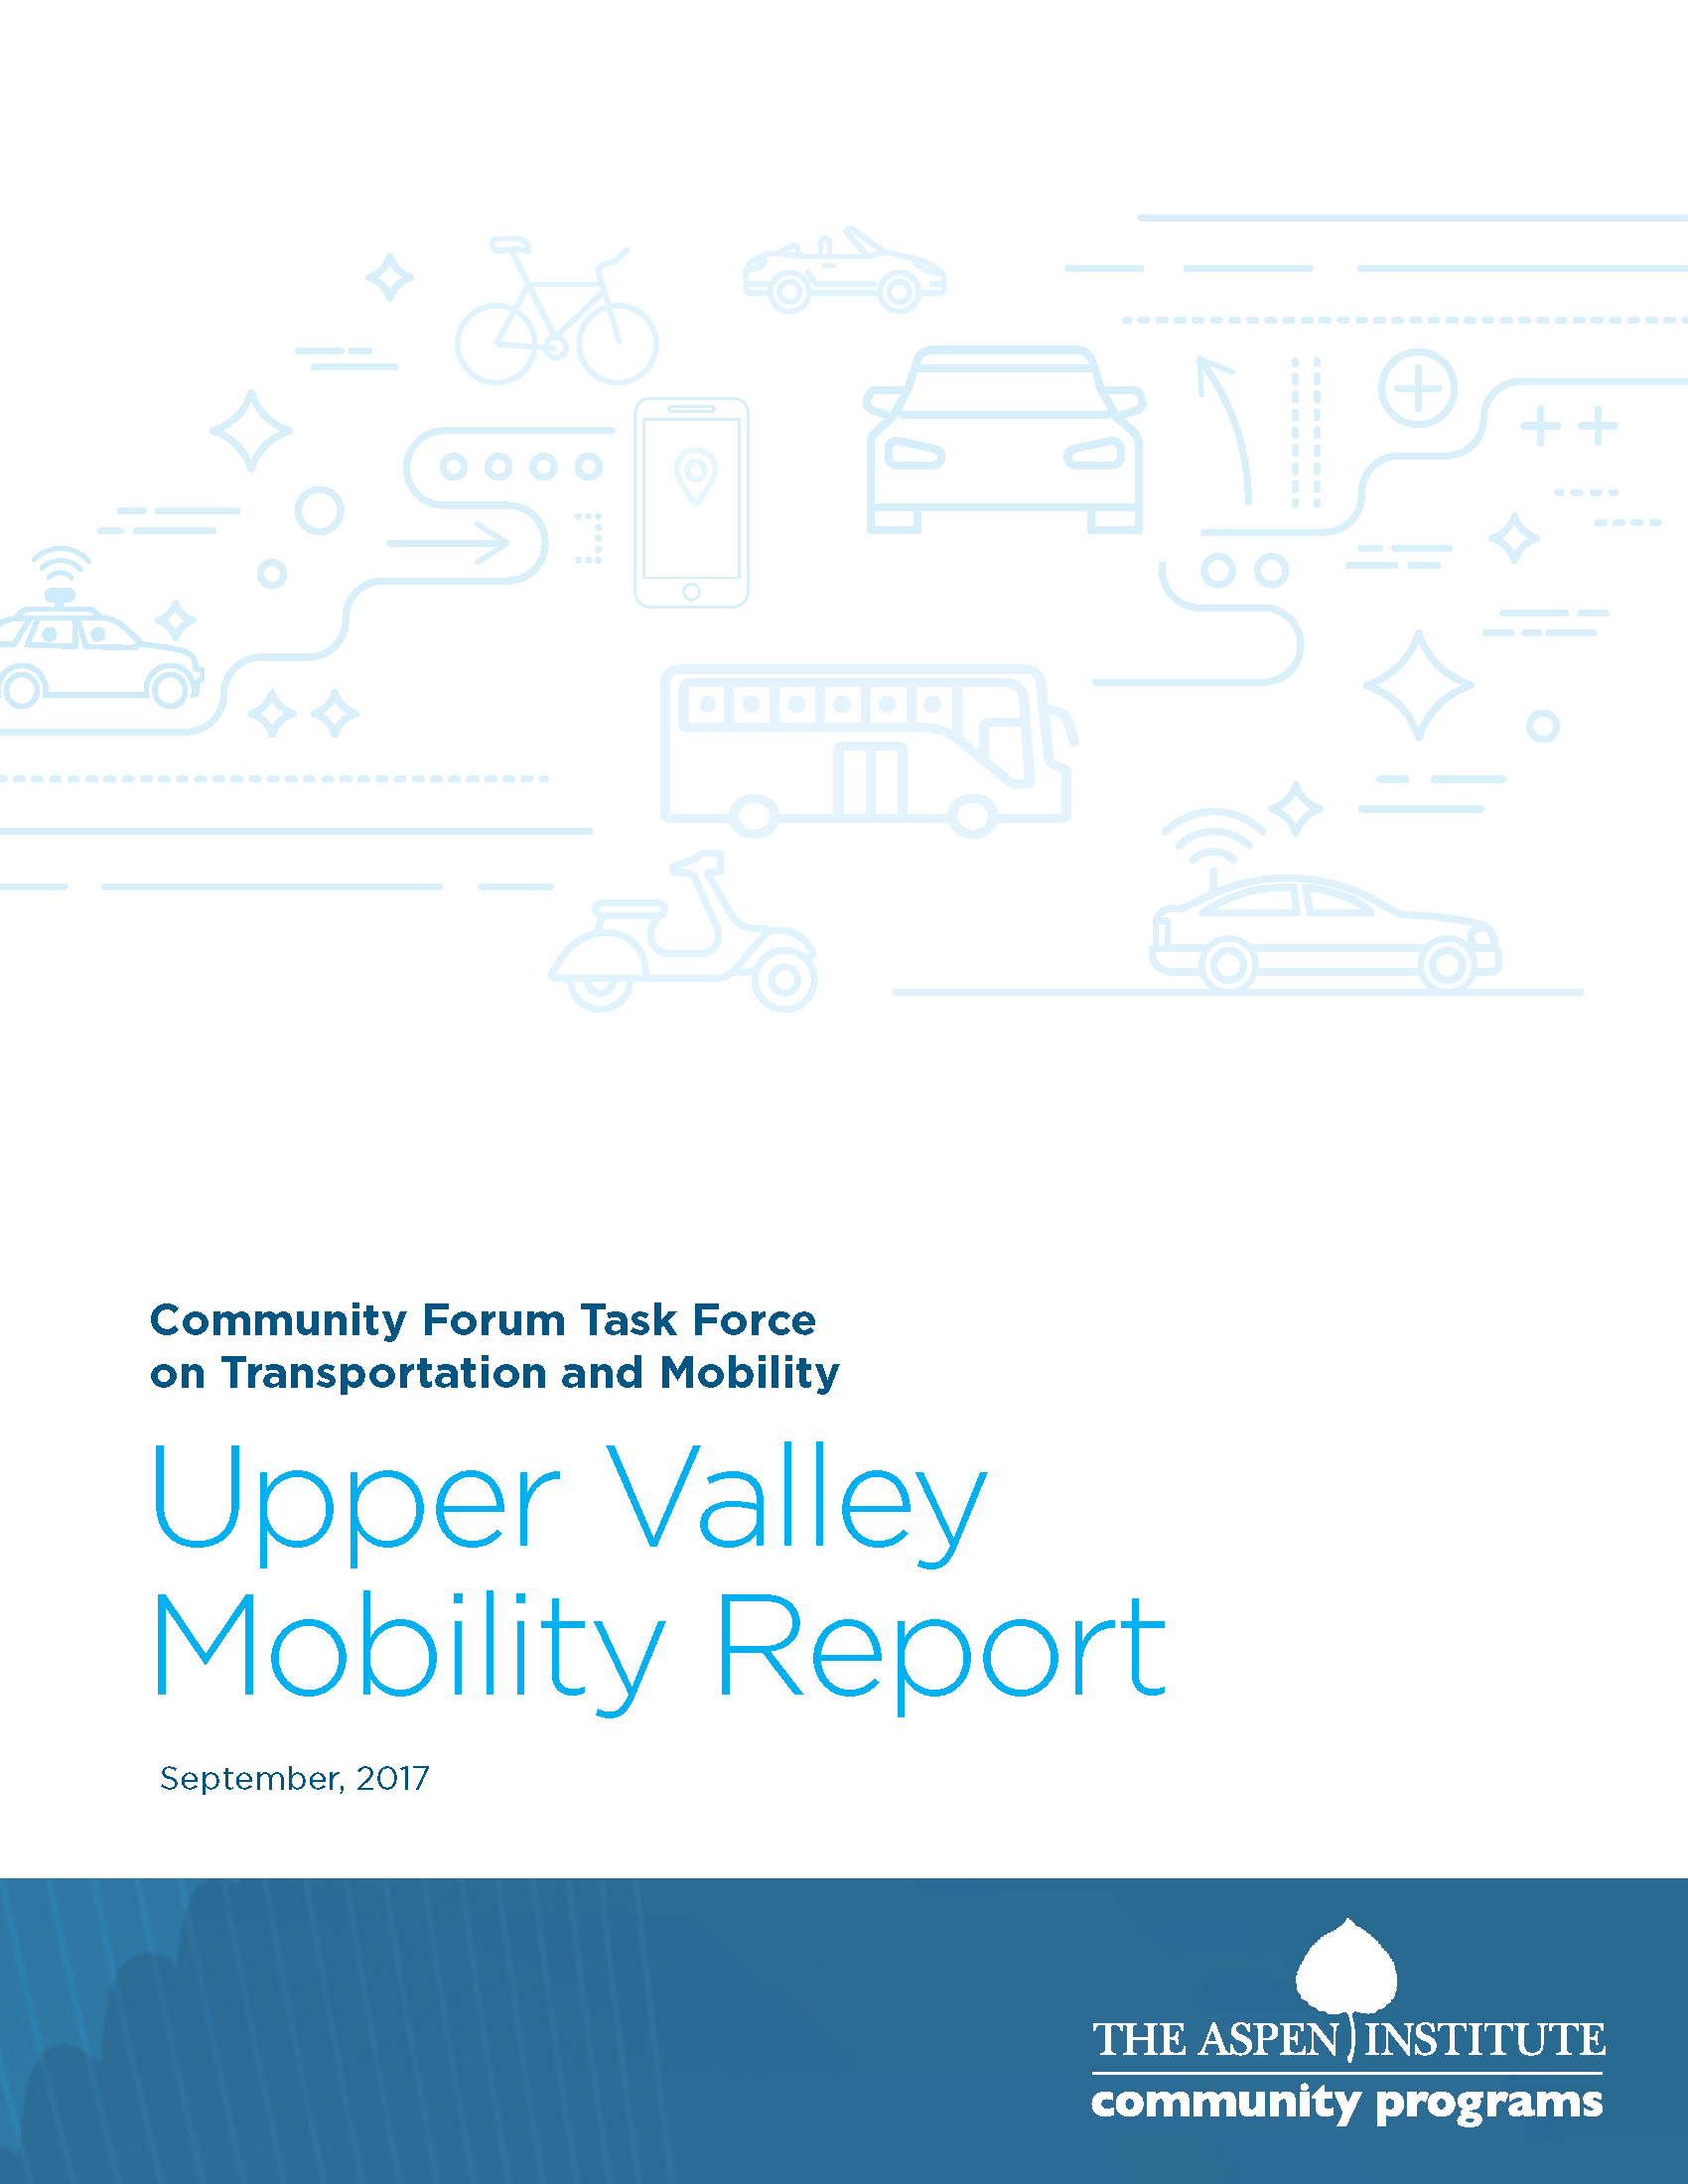 Upper Valley Mobility Report